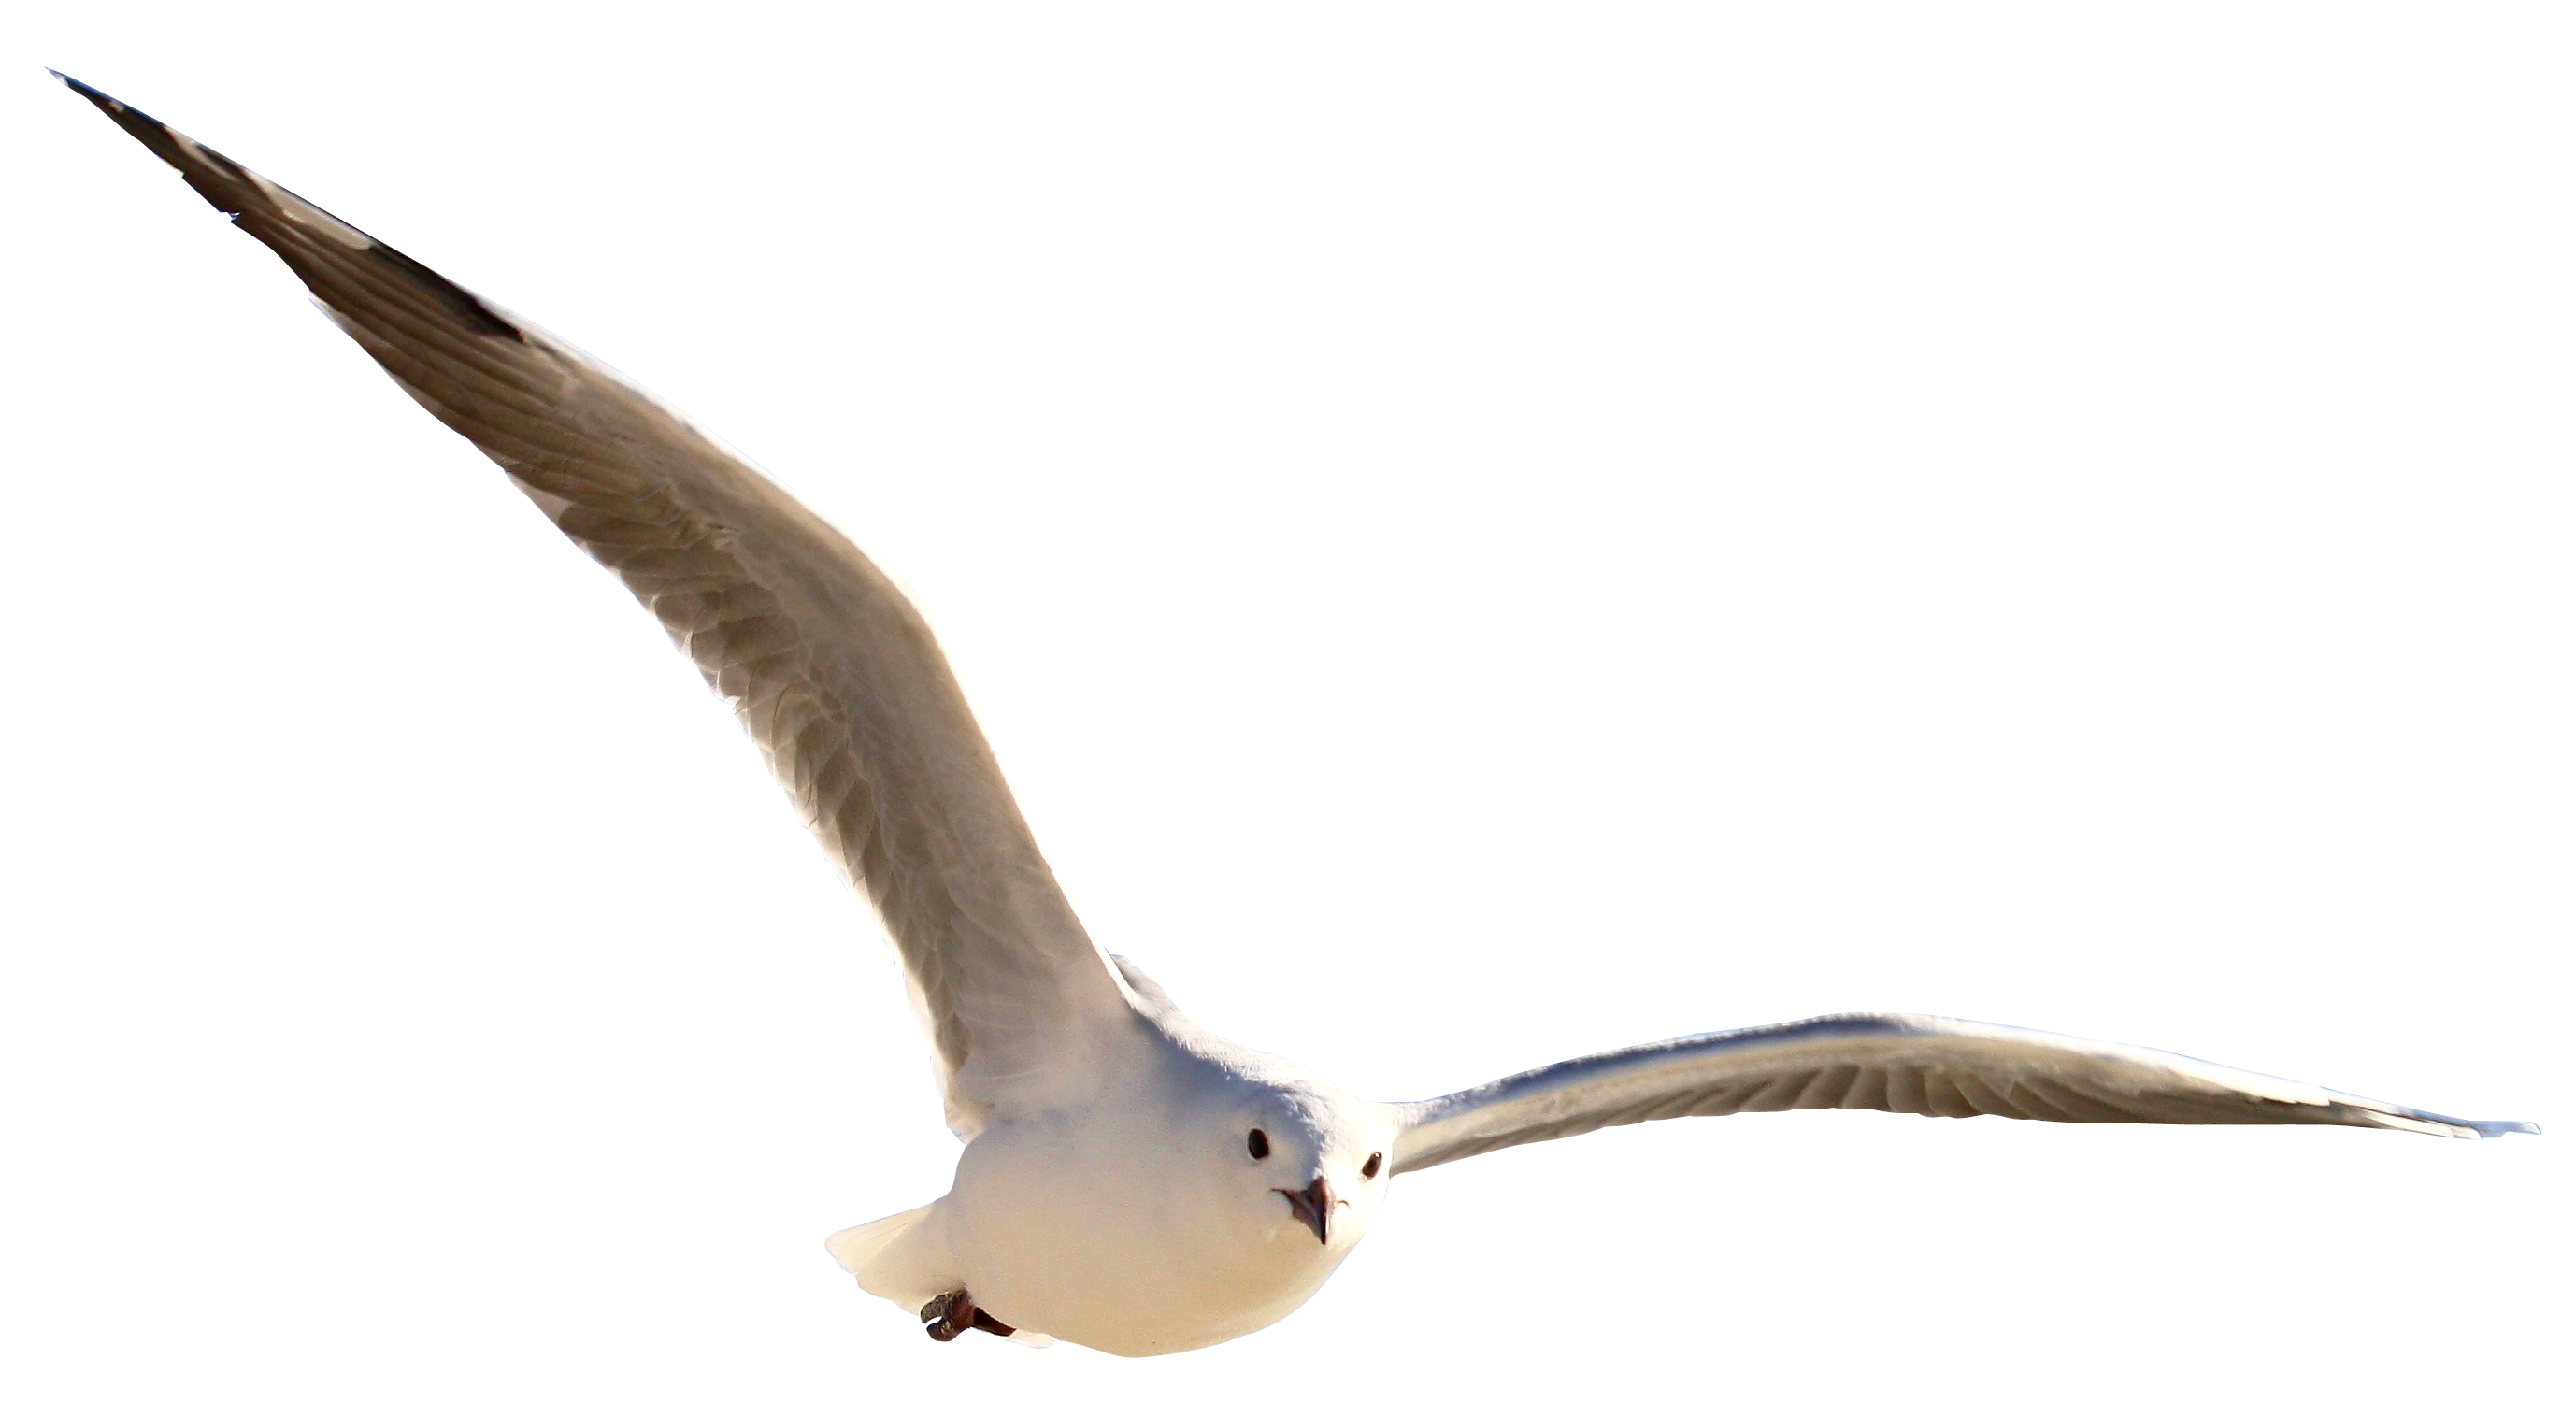 Download Gull Bird PNG Image for Free.